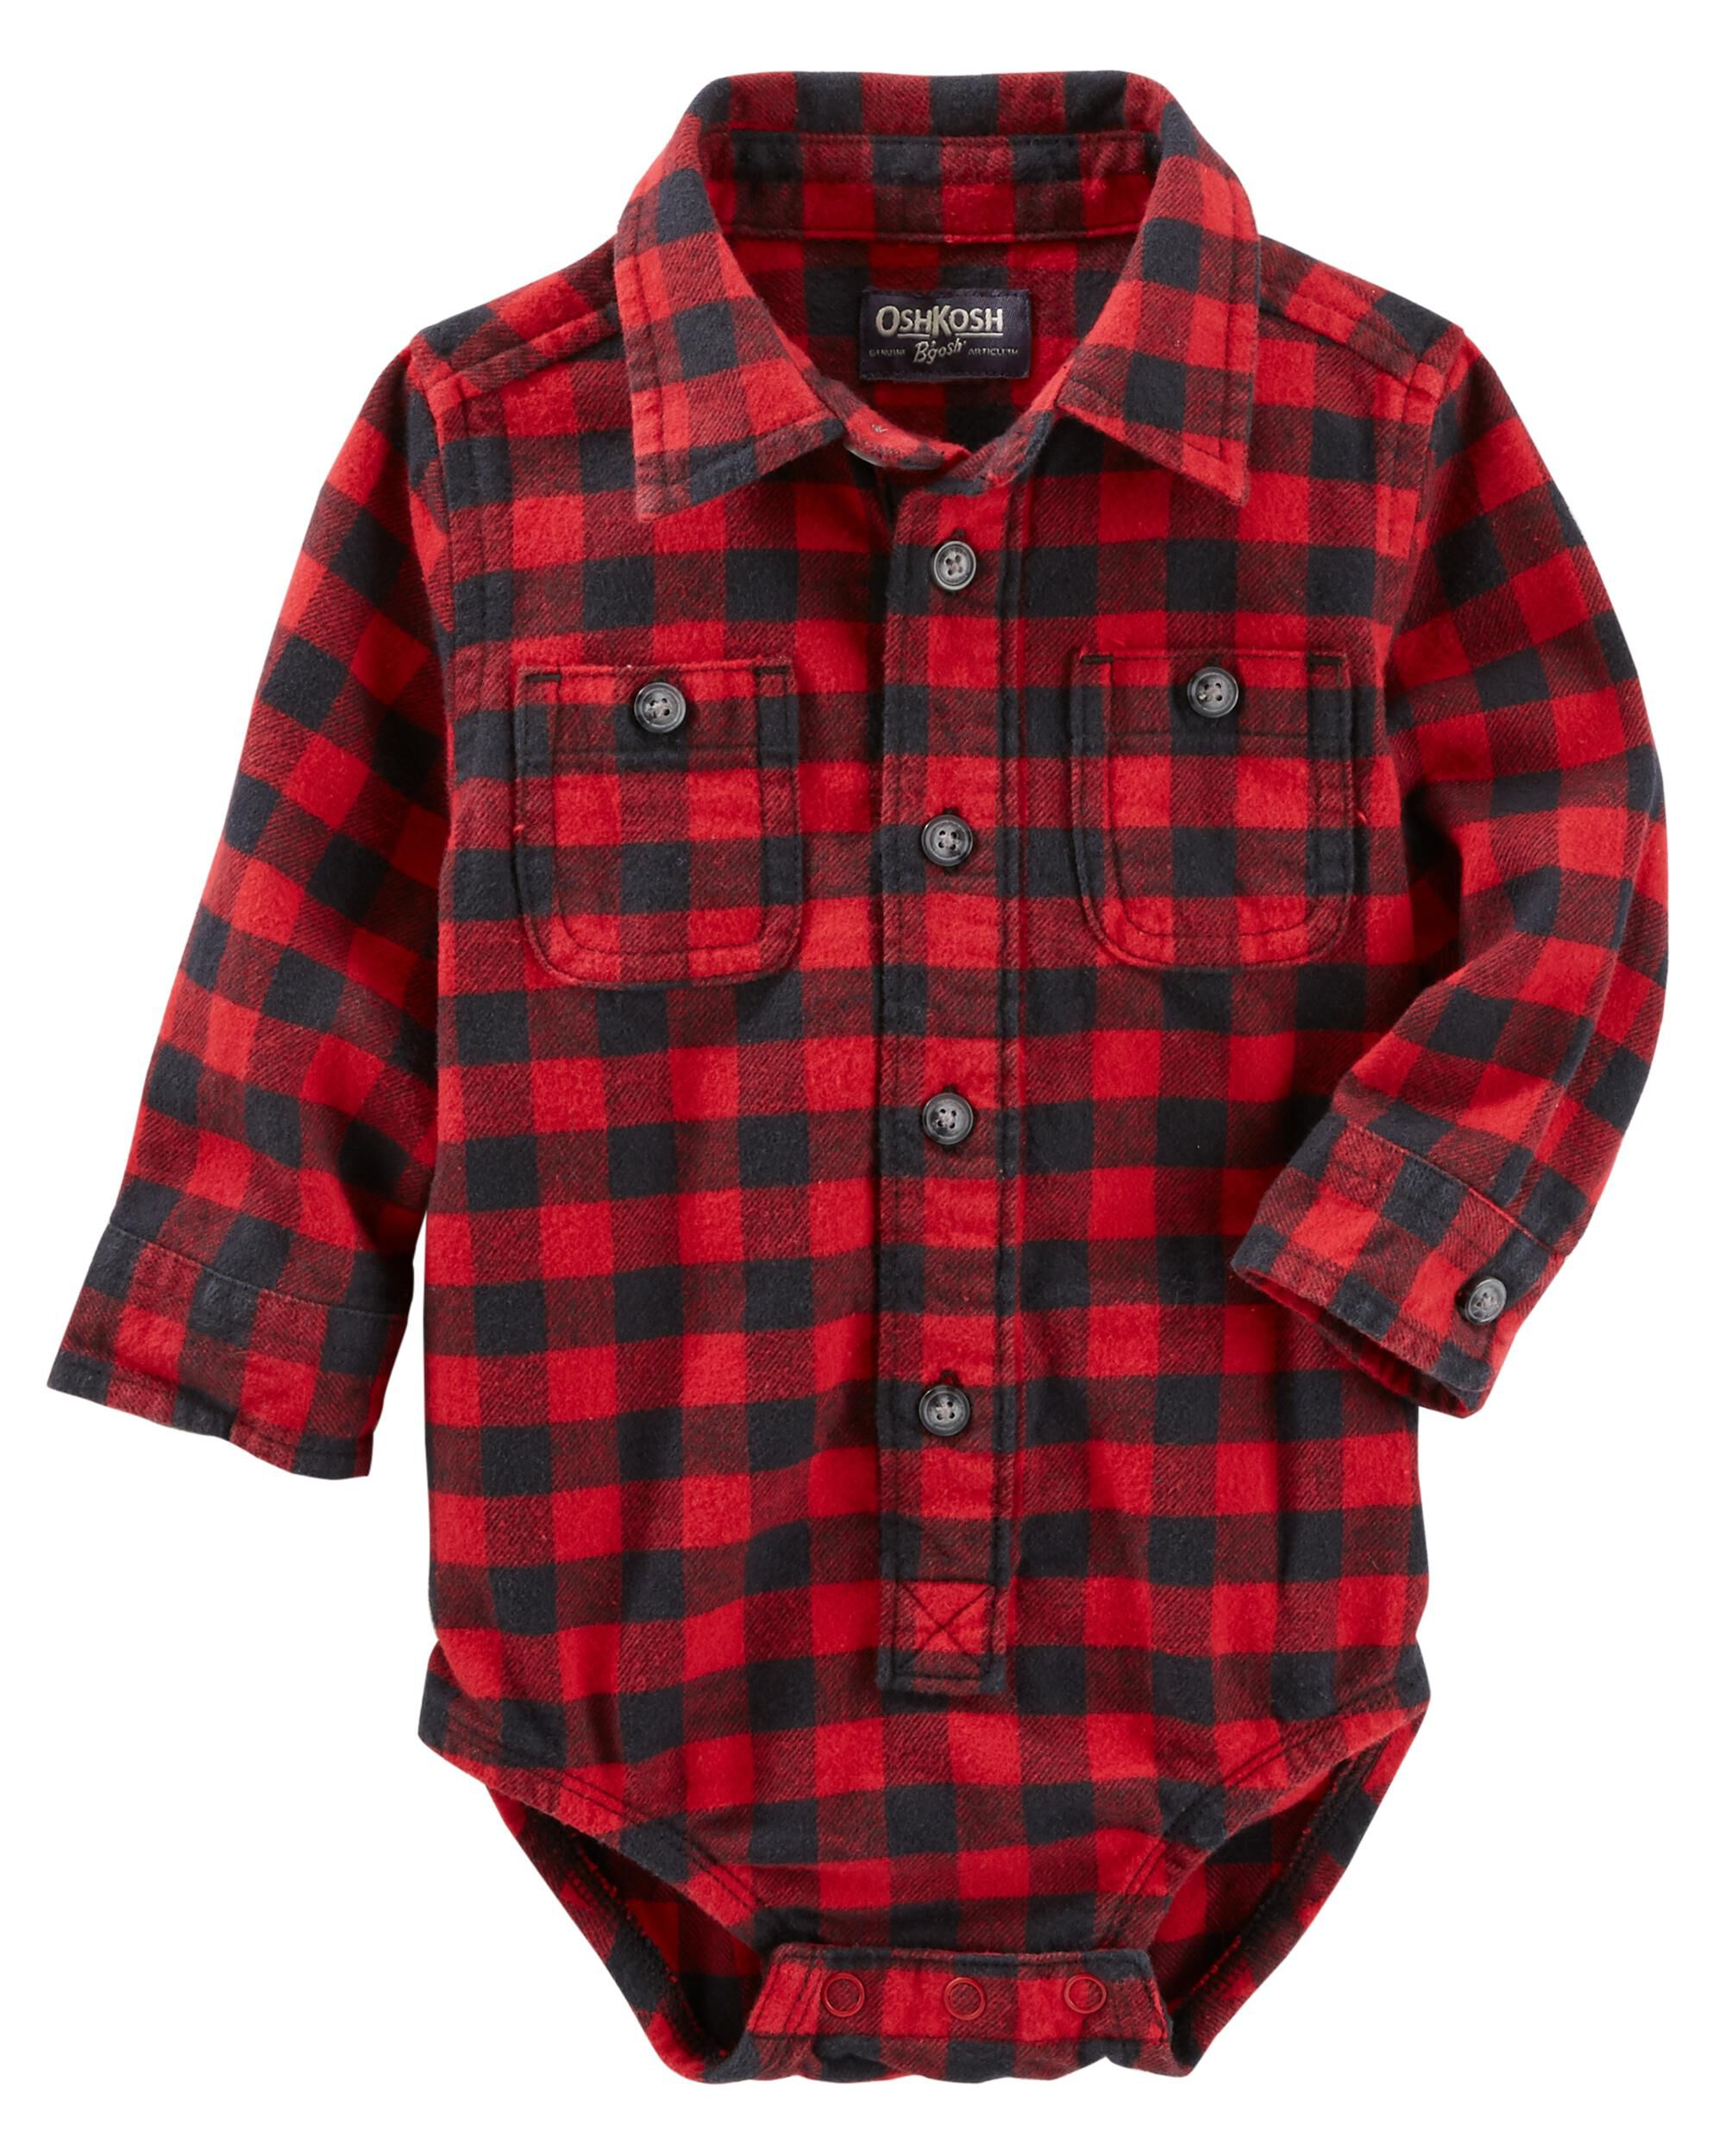 18M 24M NEW OSH KOSH TODDLER BOY RED PLAID DRESSY BODYSUIT LONG SLEEVE 12M